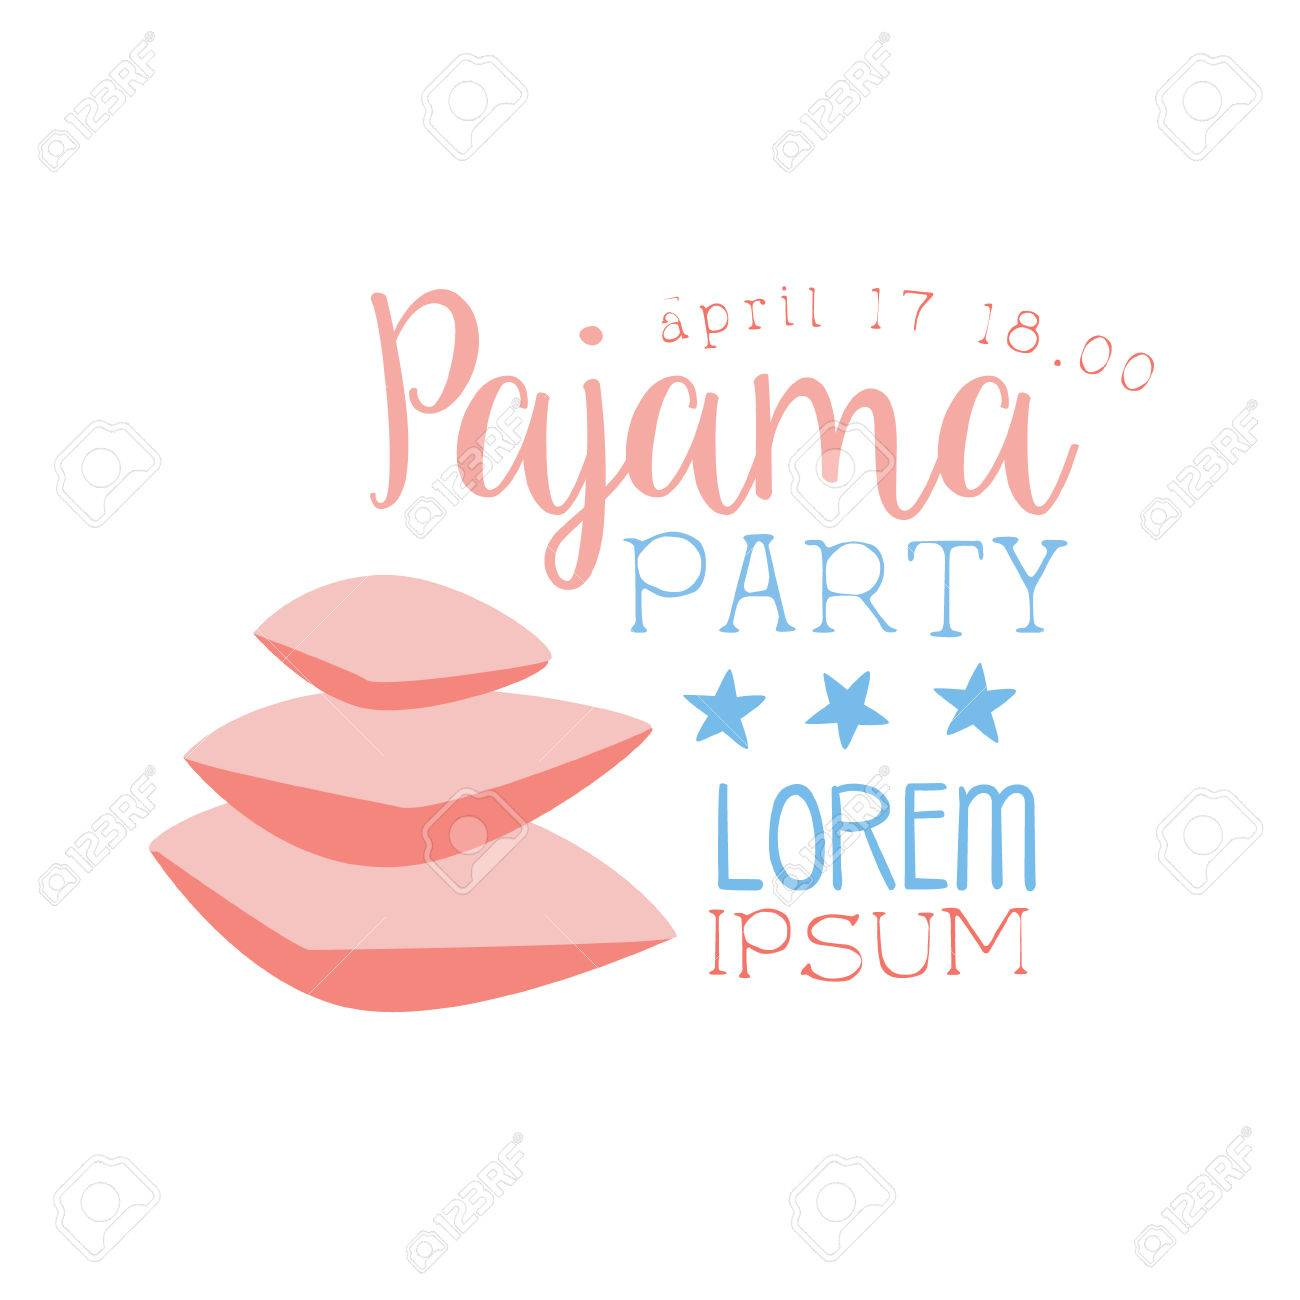 Girly Pajama Party Invitation Card Template With Pile Of Pillows ...